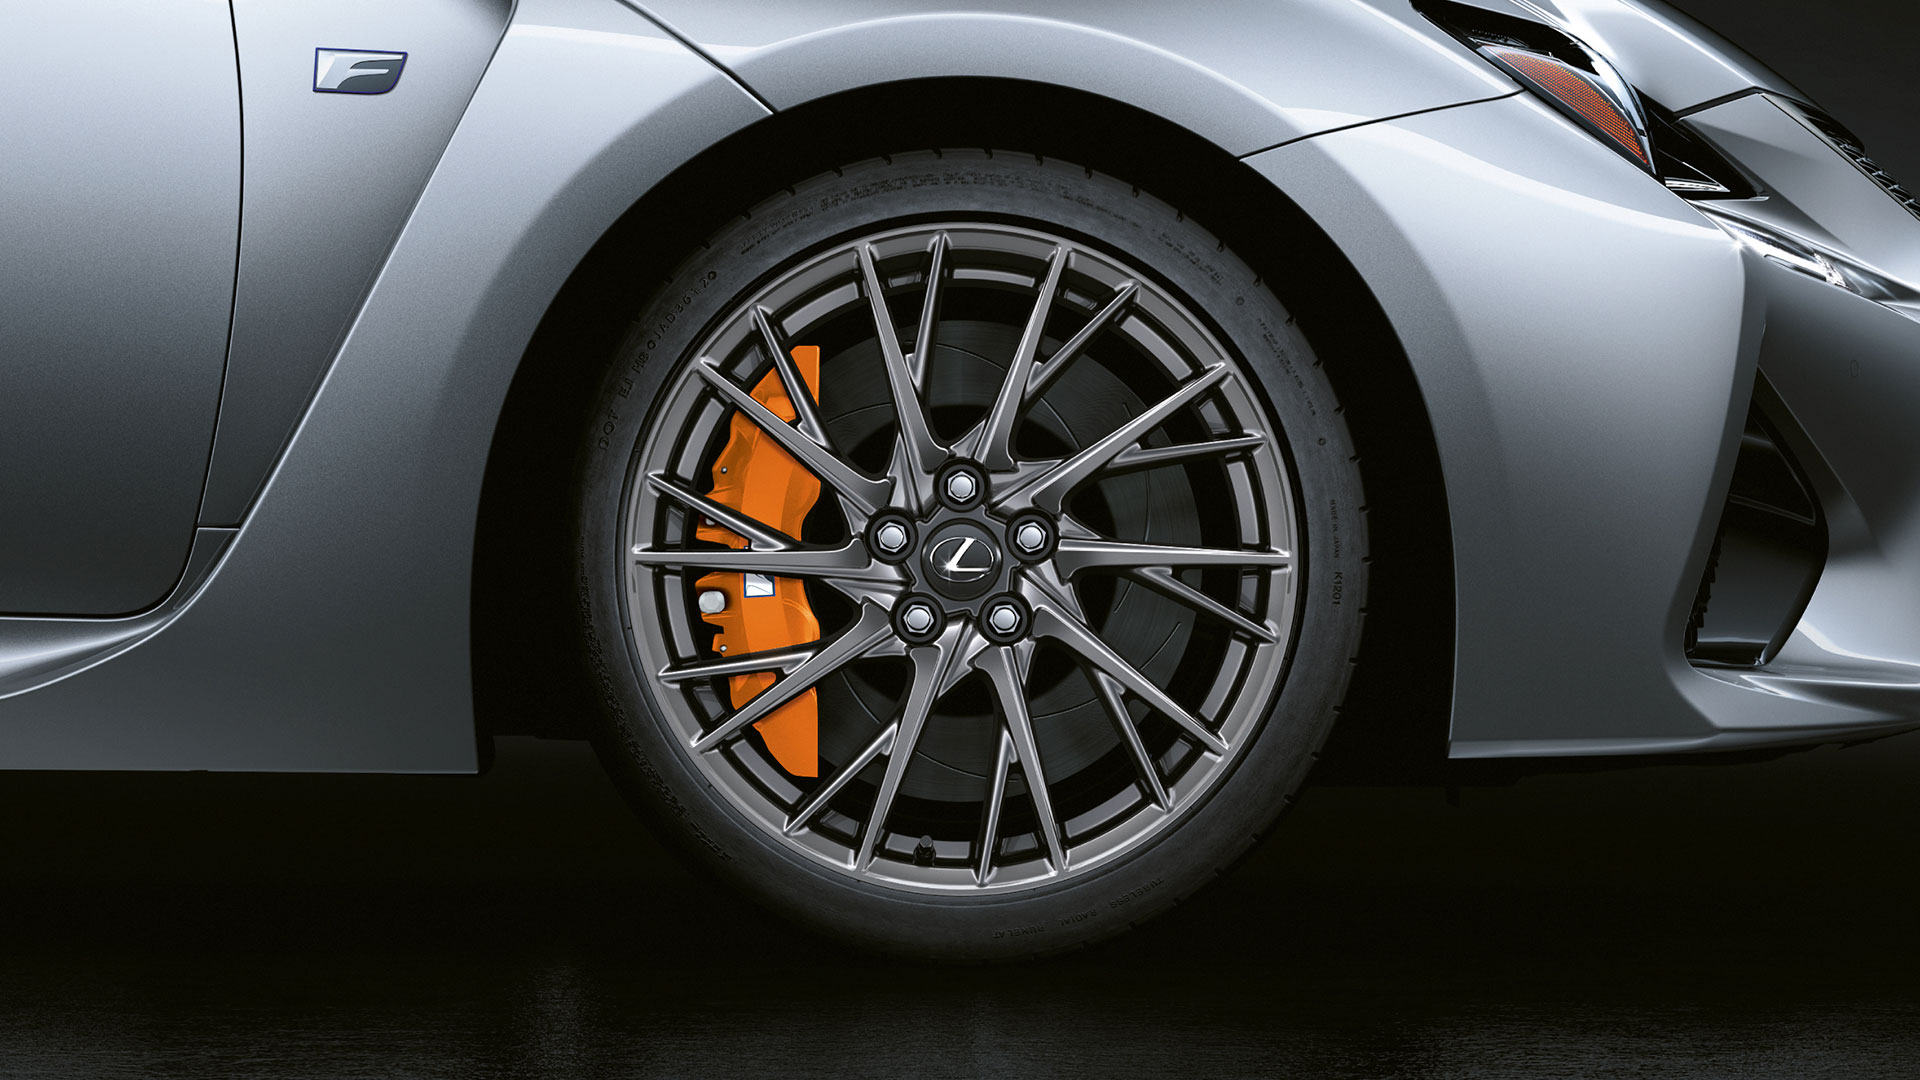 2017 lexus rc f features 19 inch alloy wheels